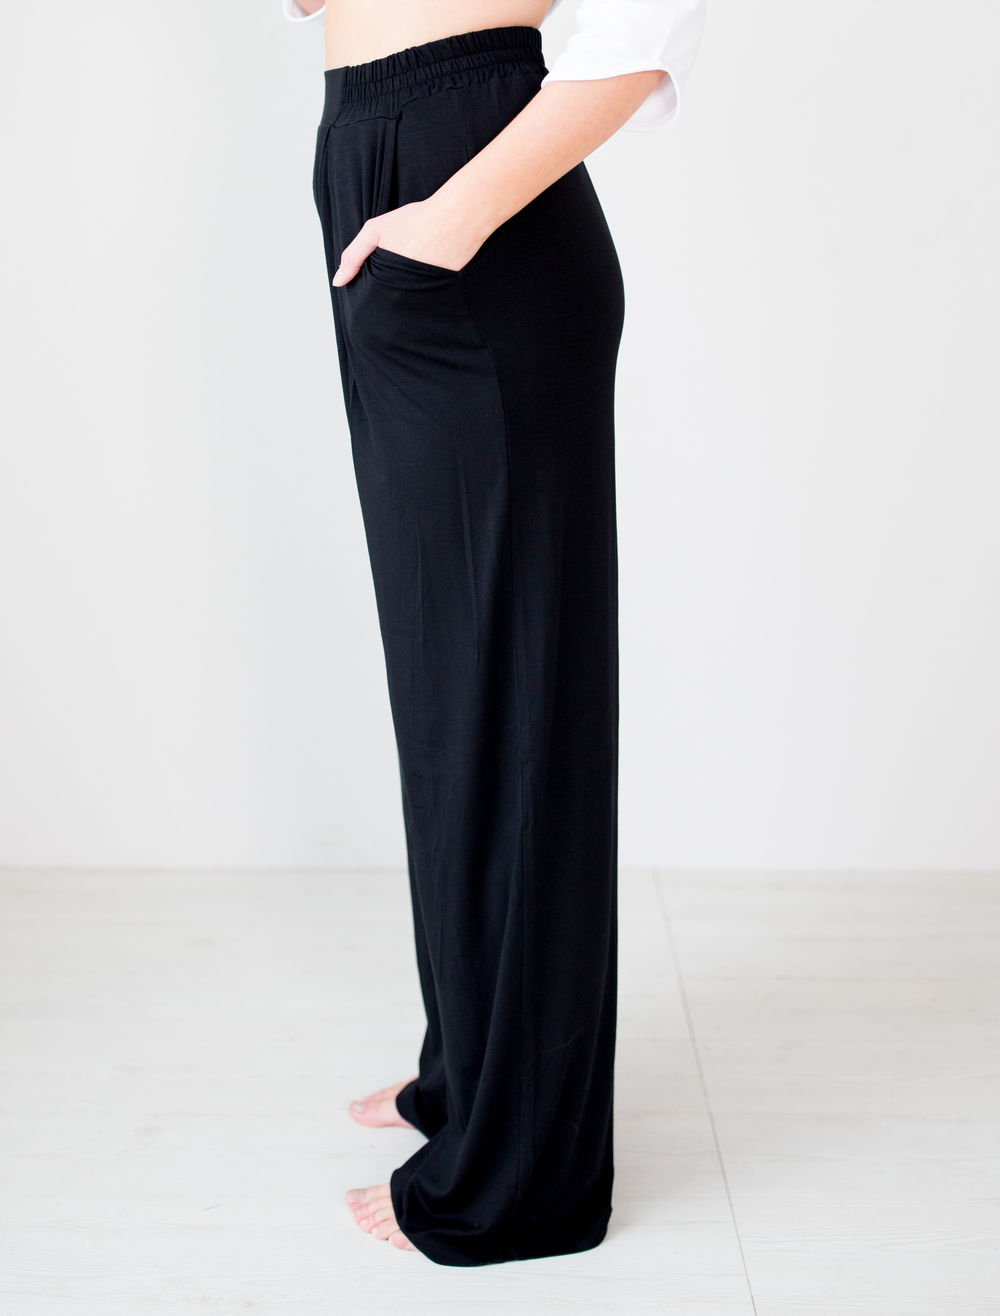 BLAA LOGAN PANTS, BLACK (lahkeen sisämitta 82cm)